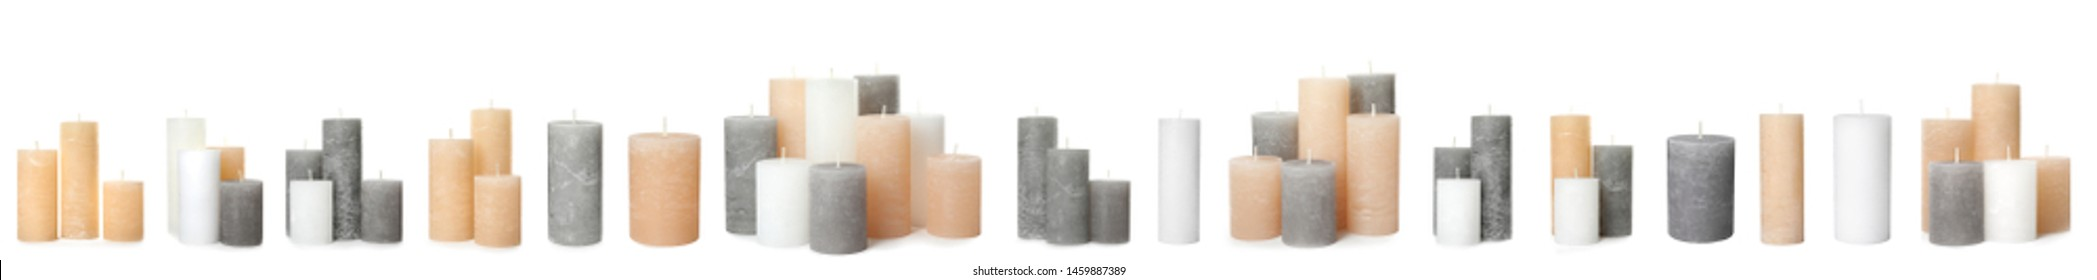 Set with different decorative wax candles on white background. Banner design